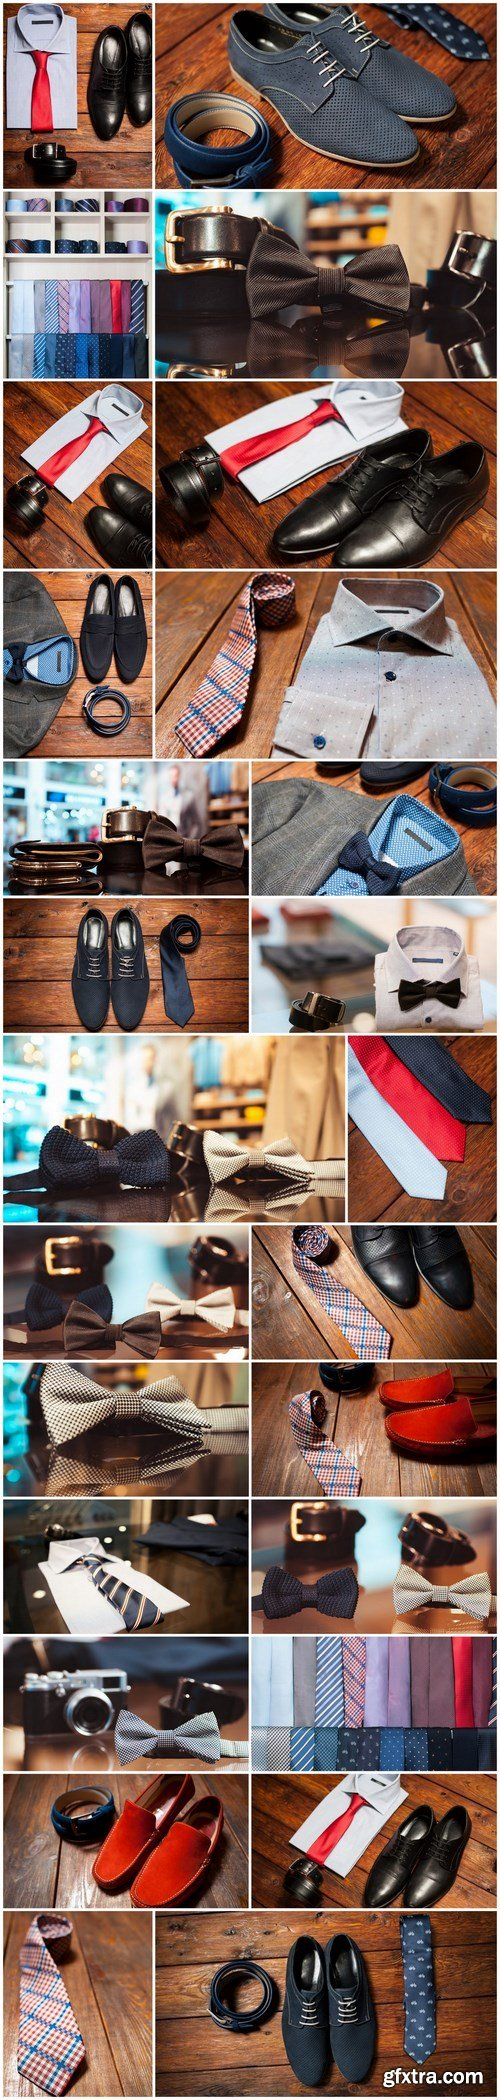 Men\'s Clothing and Accessories 2 - 26xUHQ JPEG Photo Stock